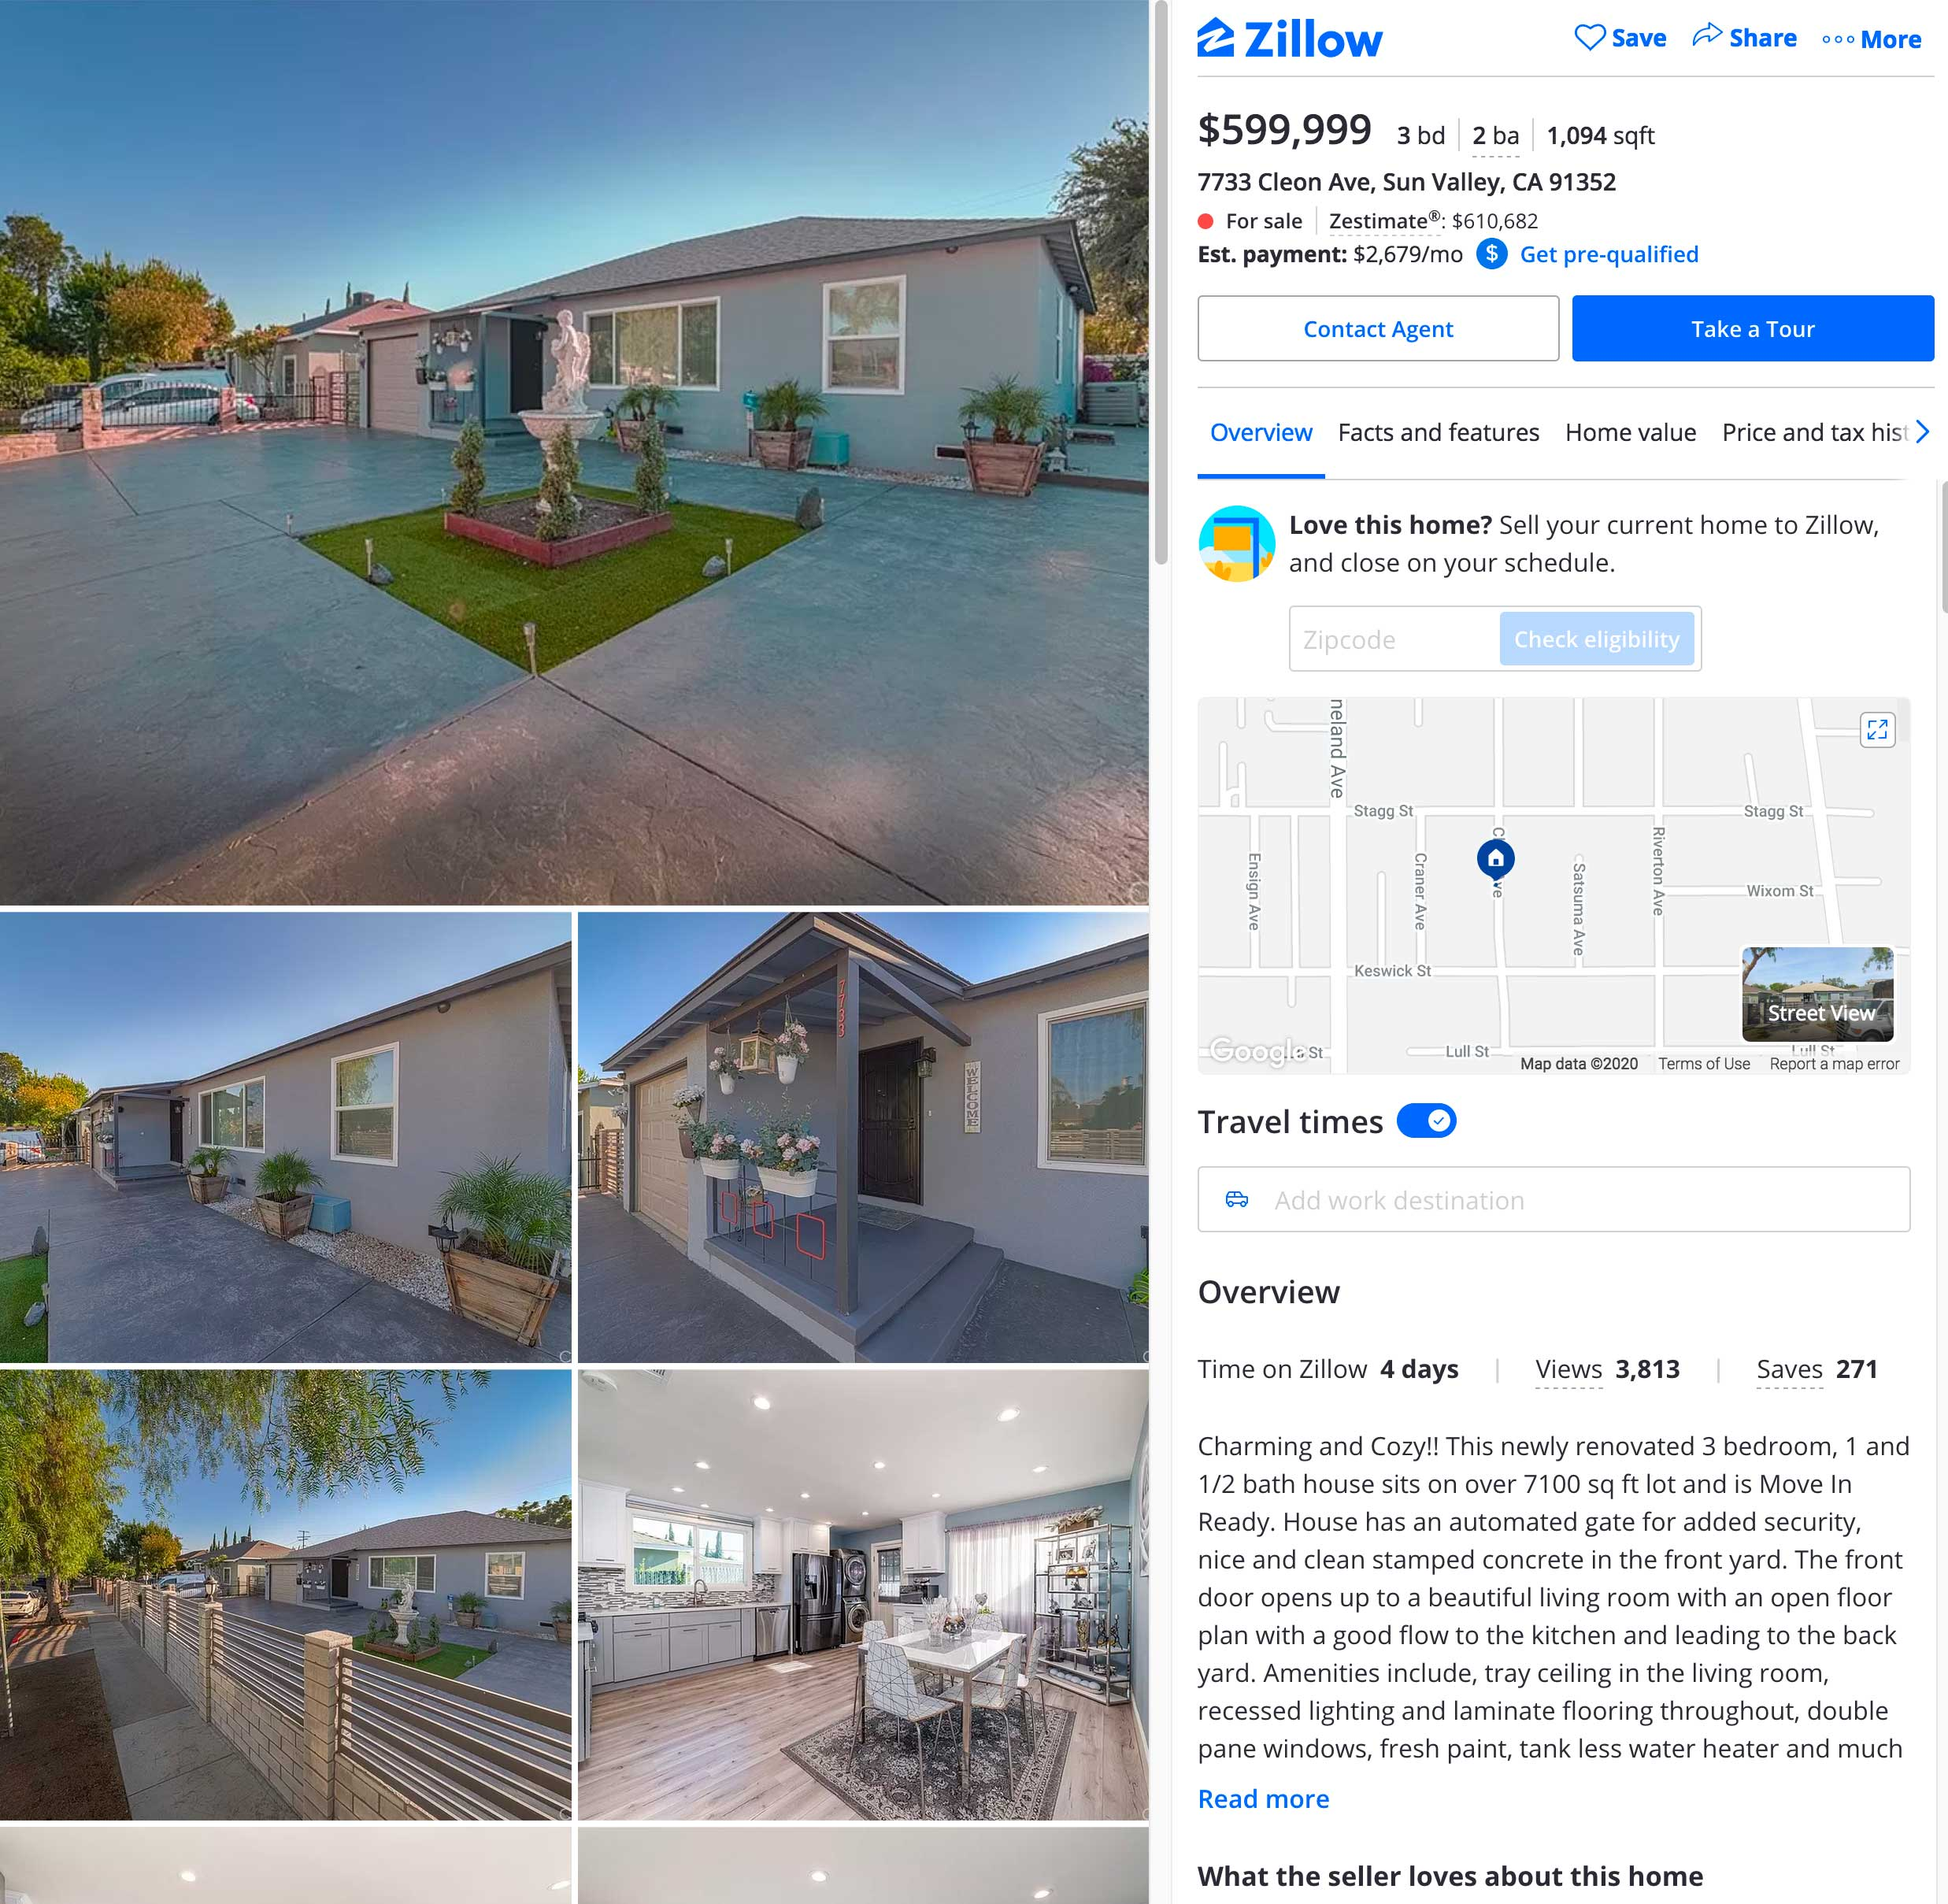 cleon ave house for sale sun valley ca